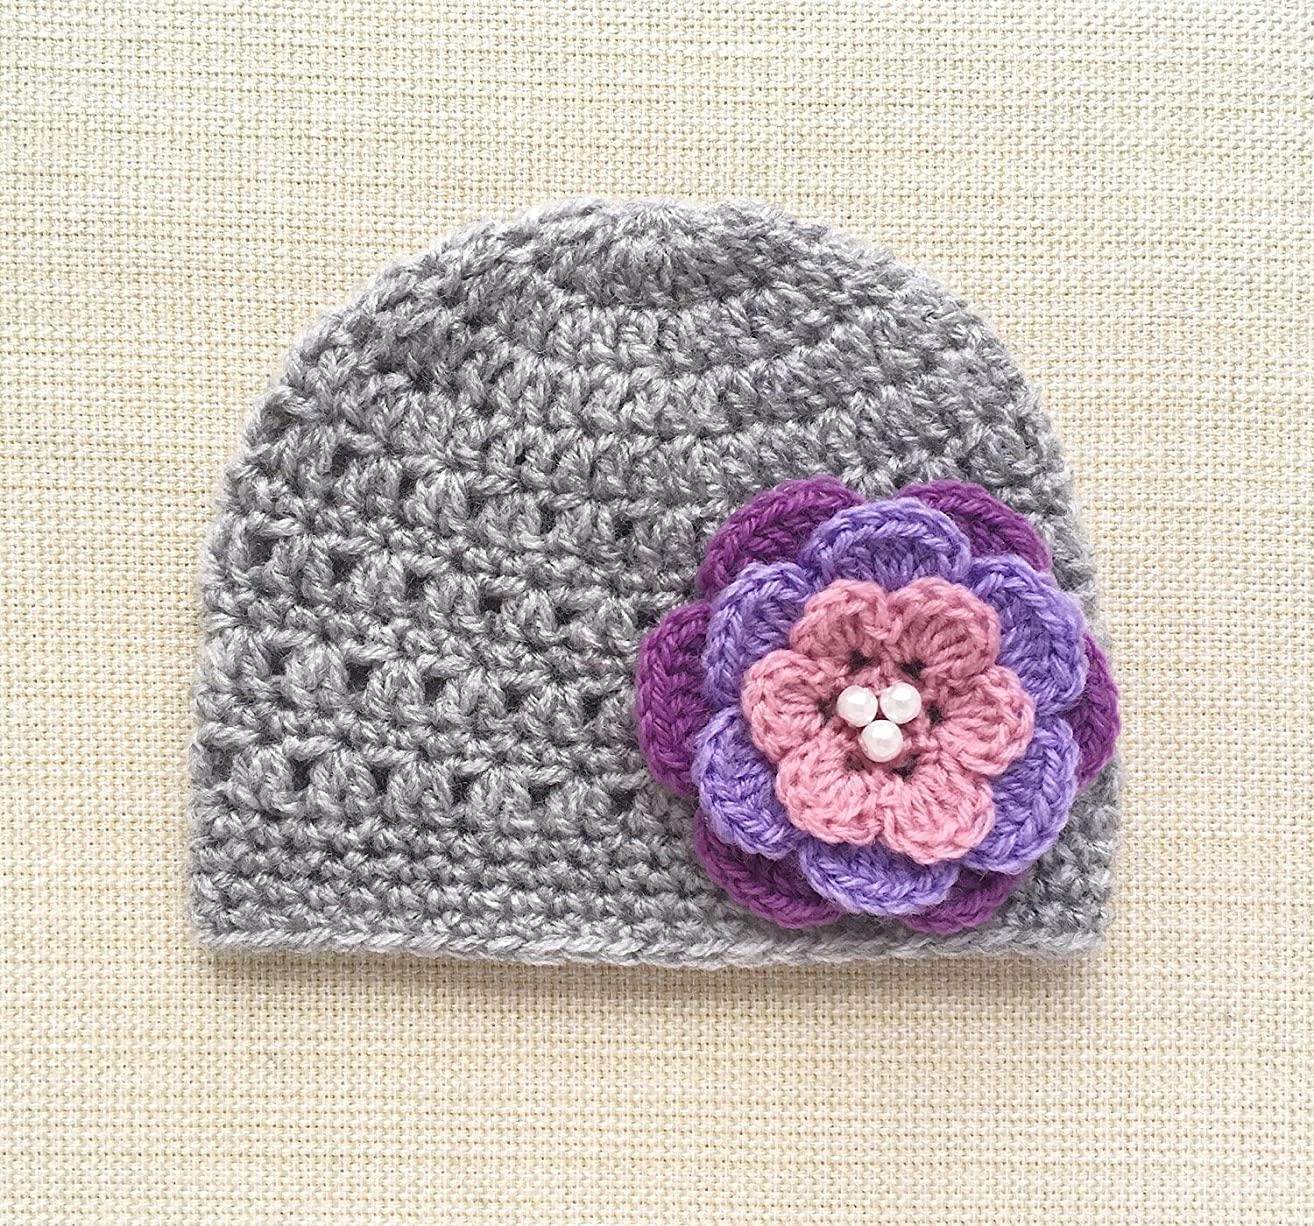 0-6 Months Crochet Baby Hats With Flower Cute New Born Beanies For Girls Newborn Photoshoot Props